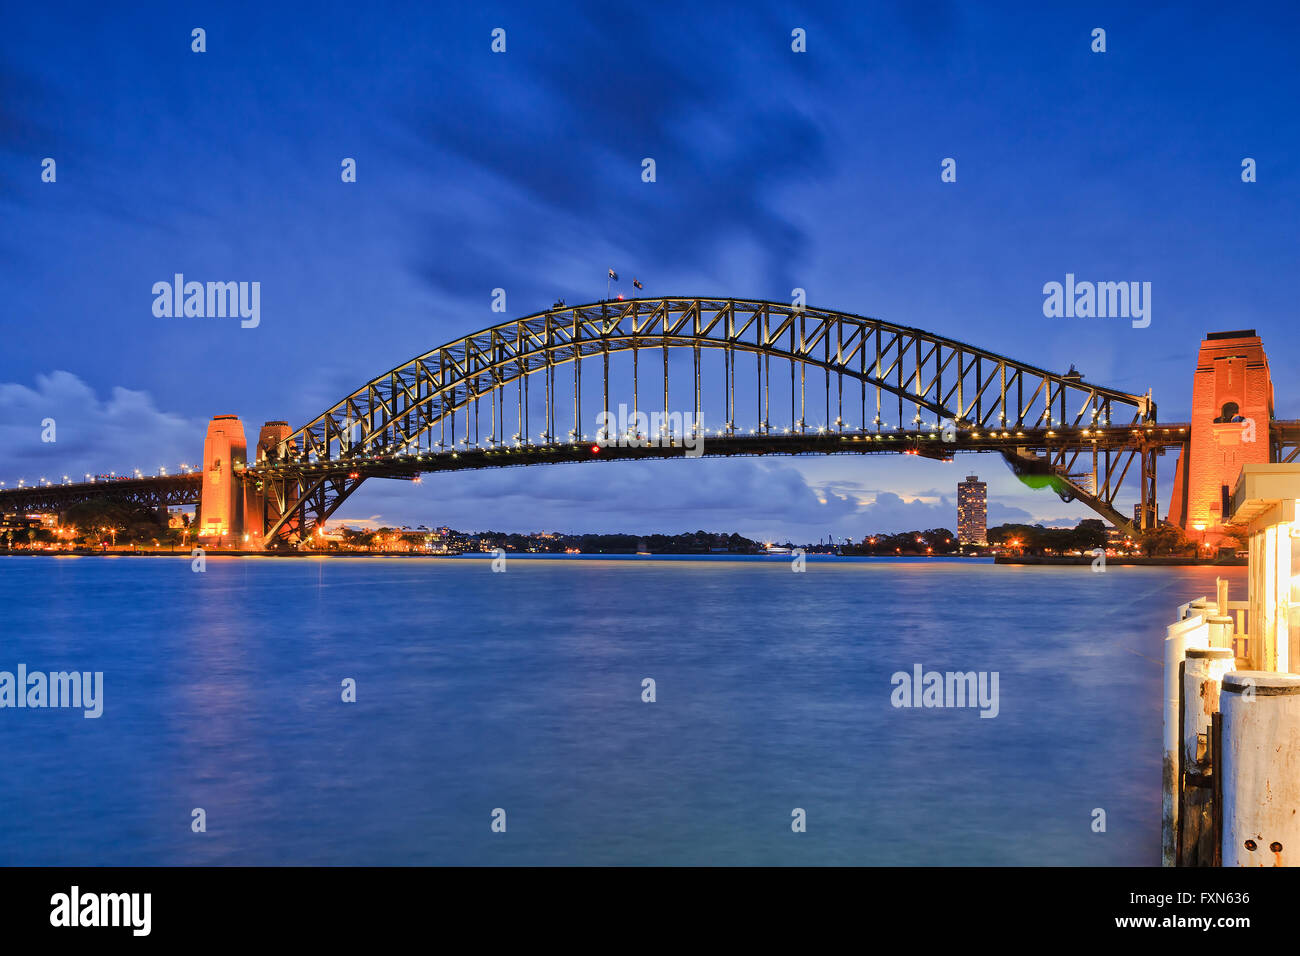 Side view of Sydney Harbour bridge against blue water and sunsettign sky with full illumination of metal arch and - Stock Image